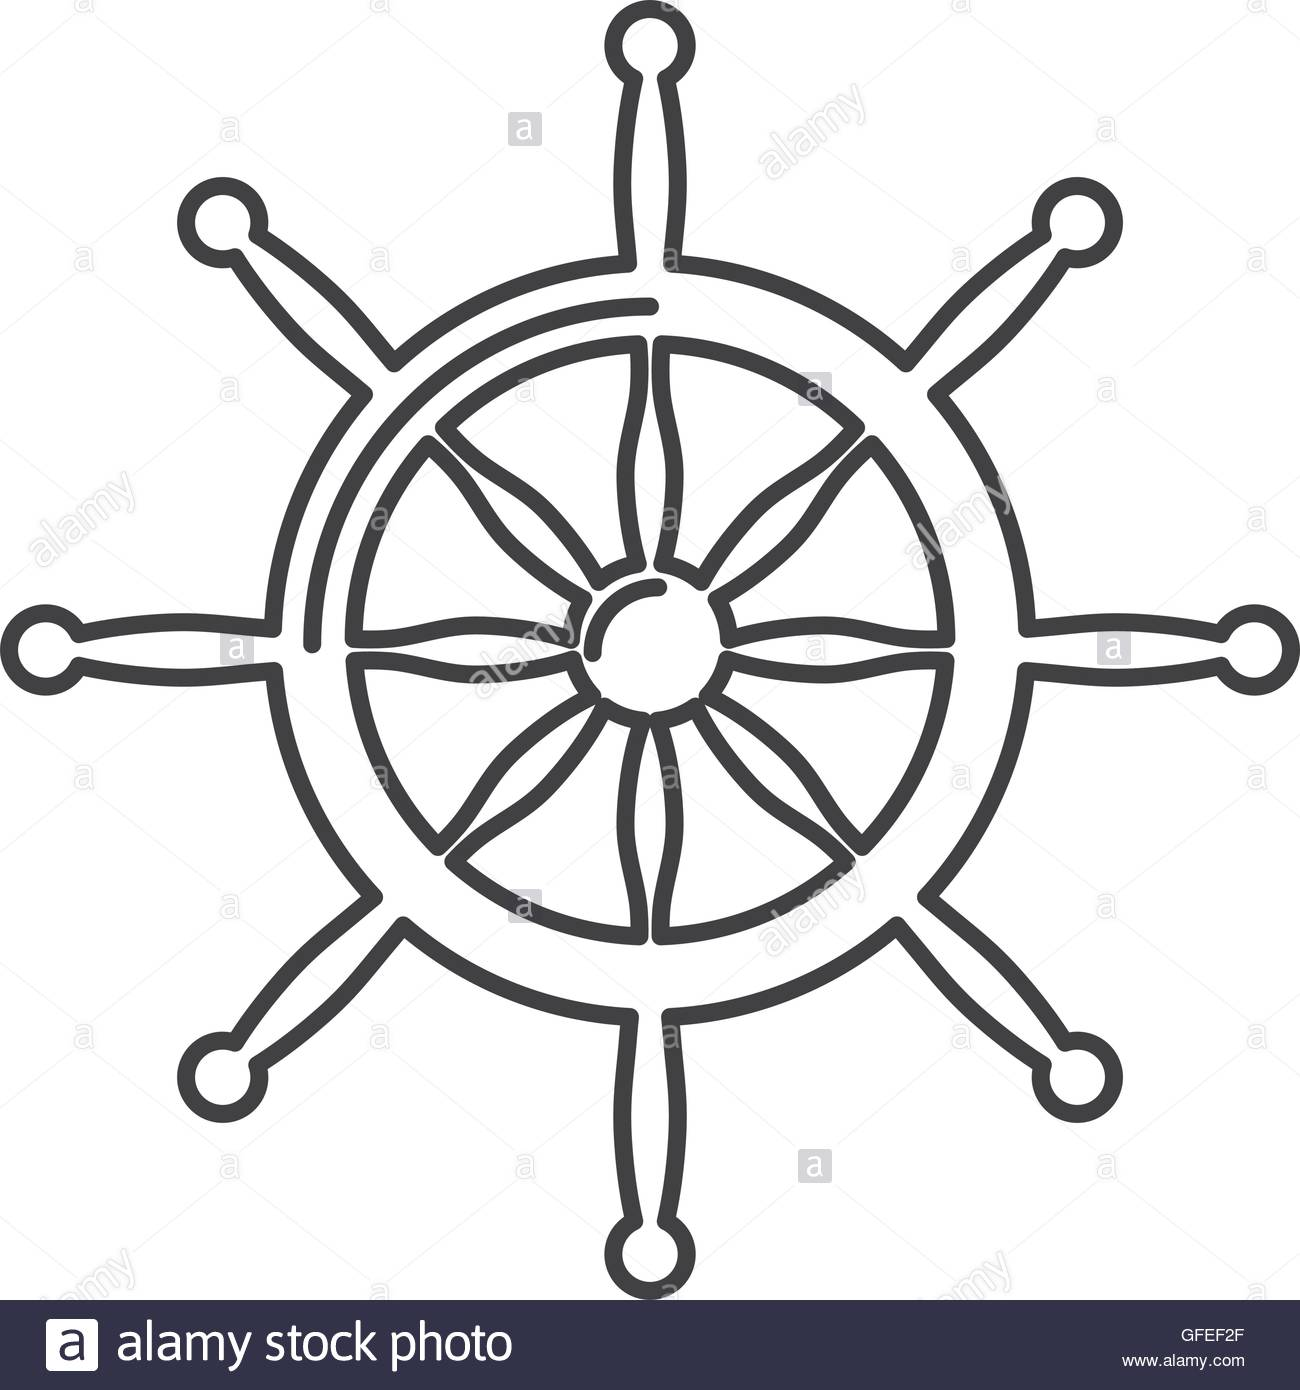 1300x1390 Timon Ship Marine Icon Stock Vector Art Amp Illustration, Vector